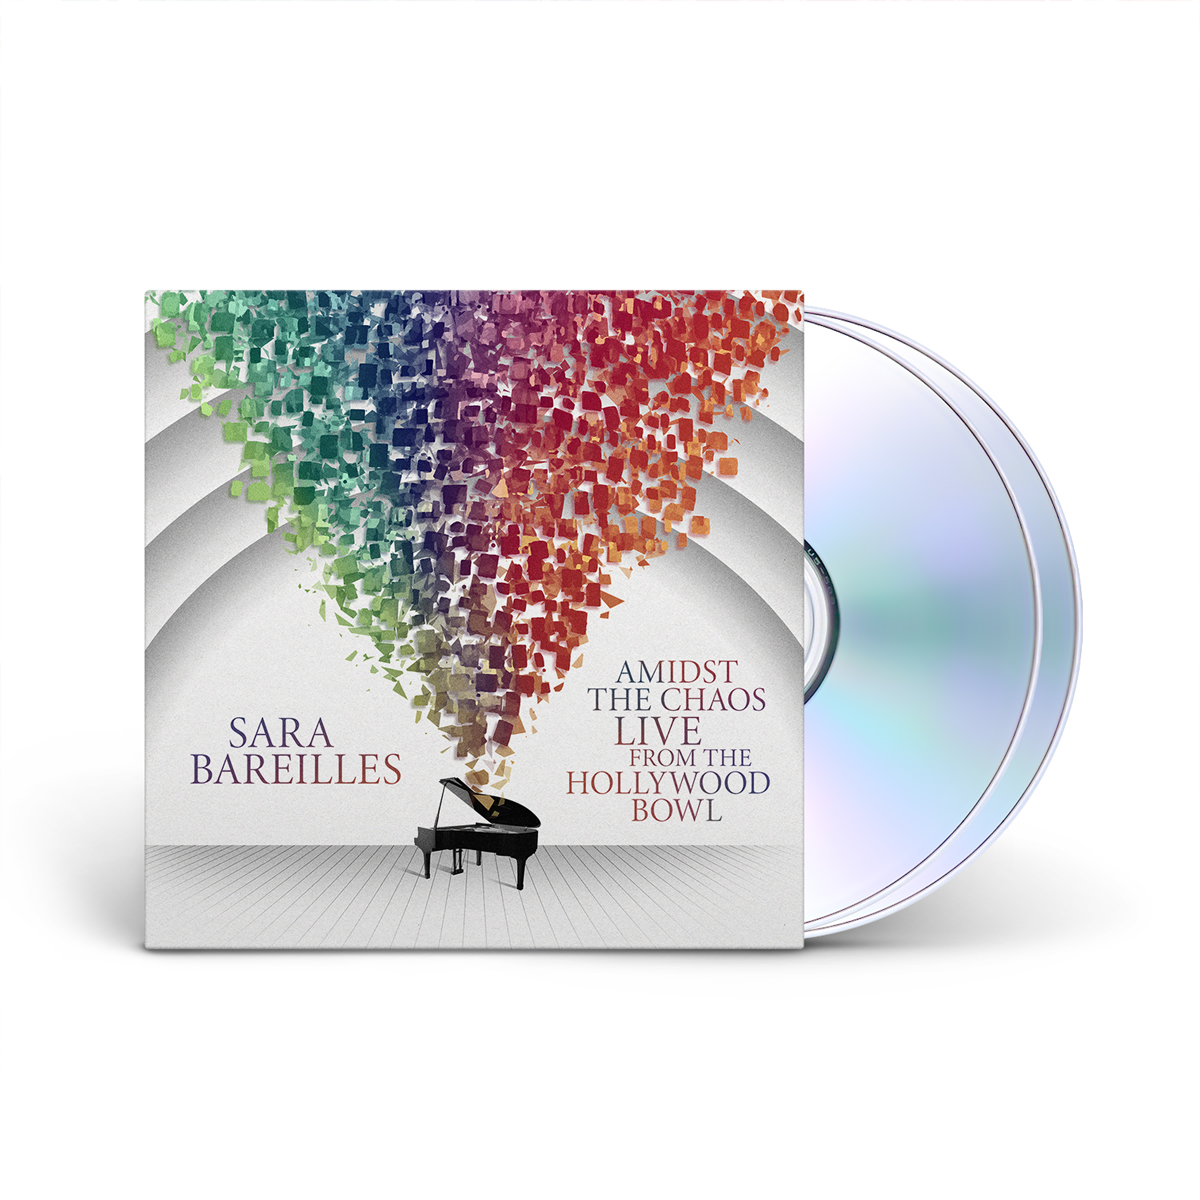 Sara Bareilles - Amidst the Chaos: Live from the Hollywood Bowl 2 CD